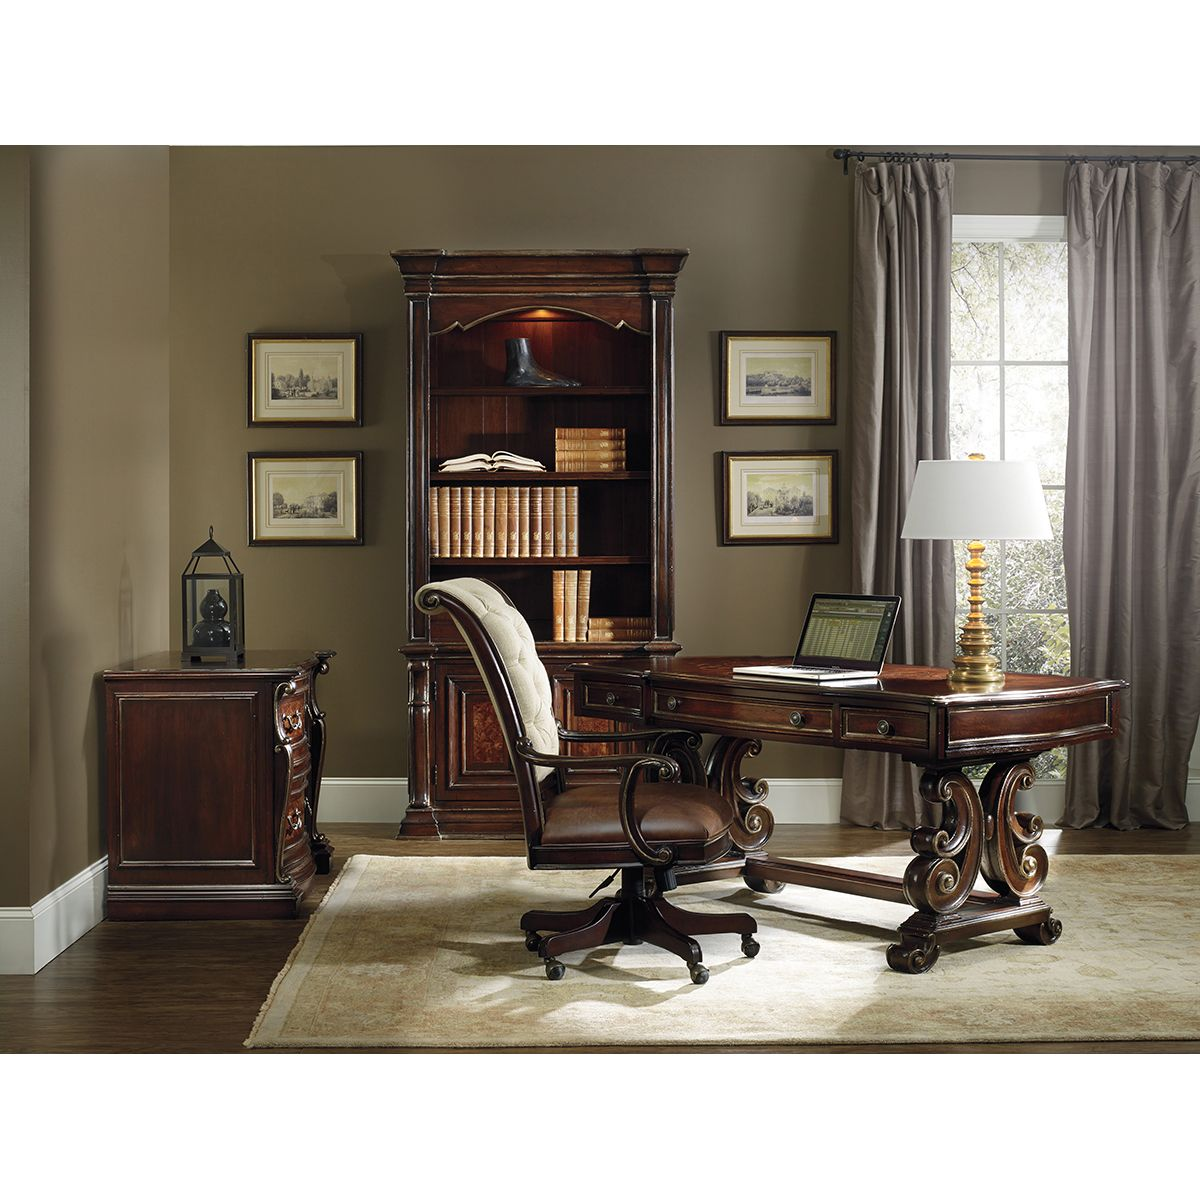 Modern Home Office Furniture, Home Office Decor